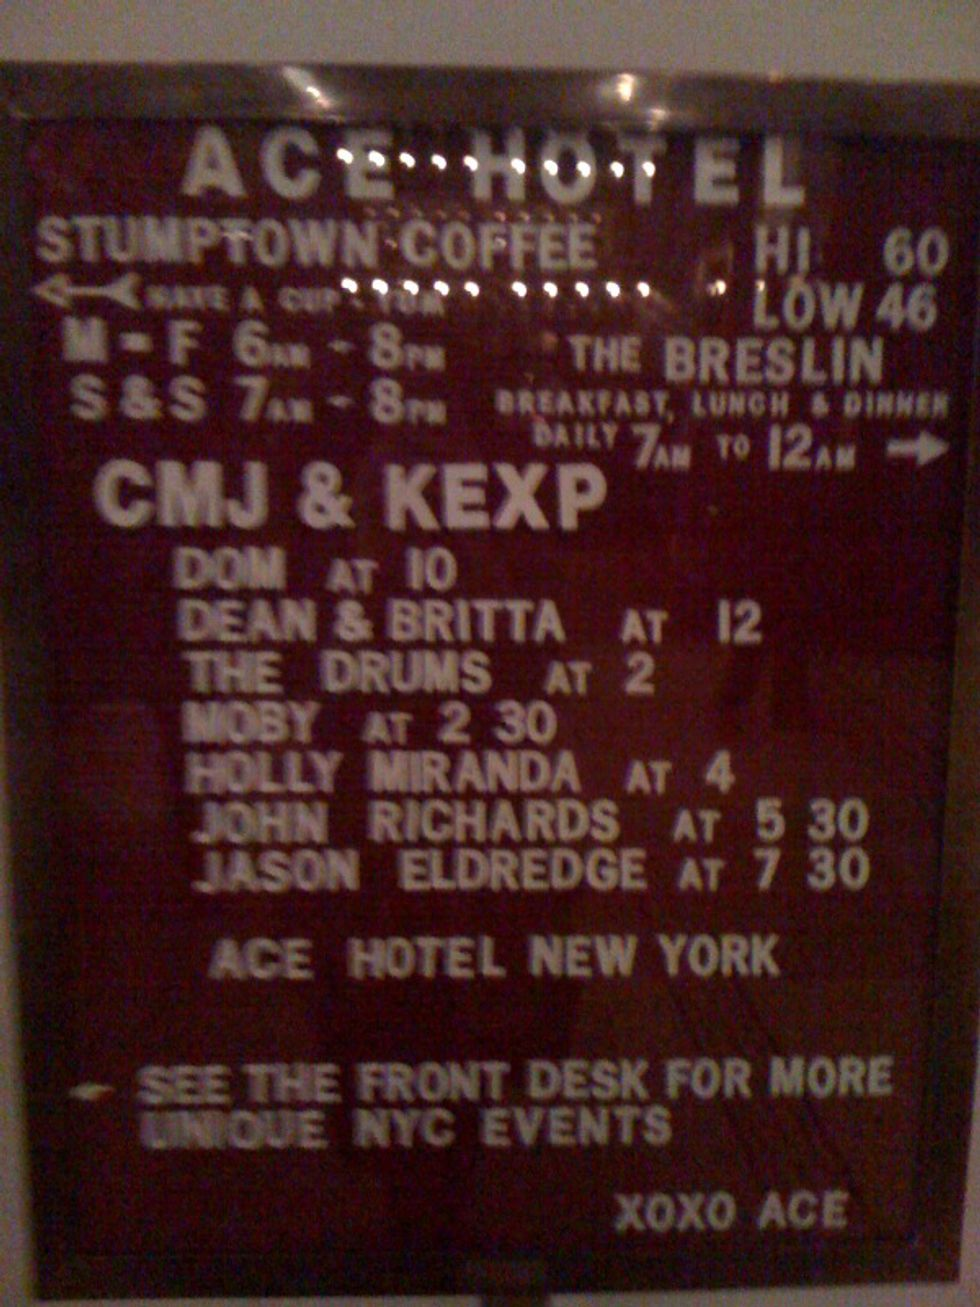 The Ace Hotel Gets into the CMJ Groove